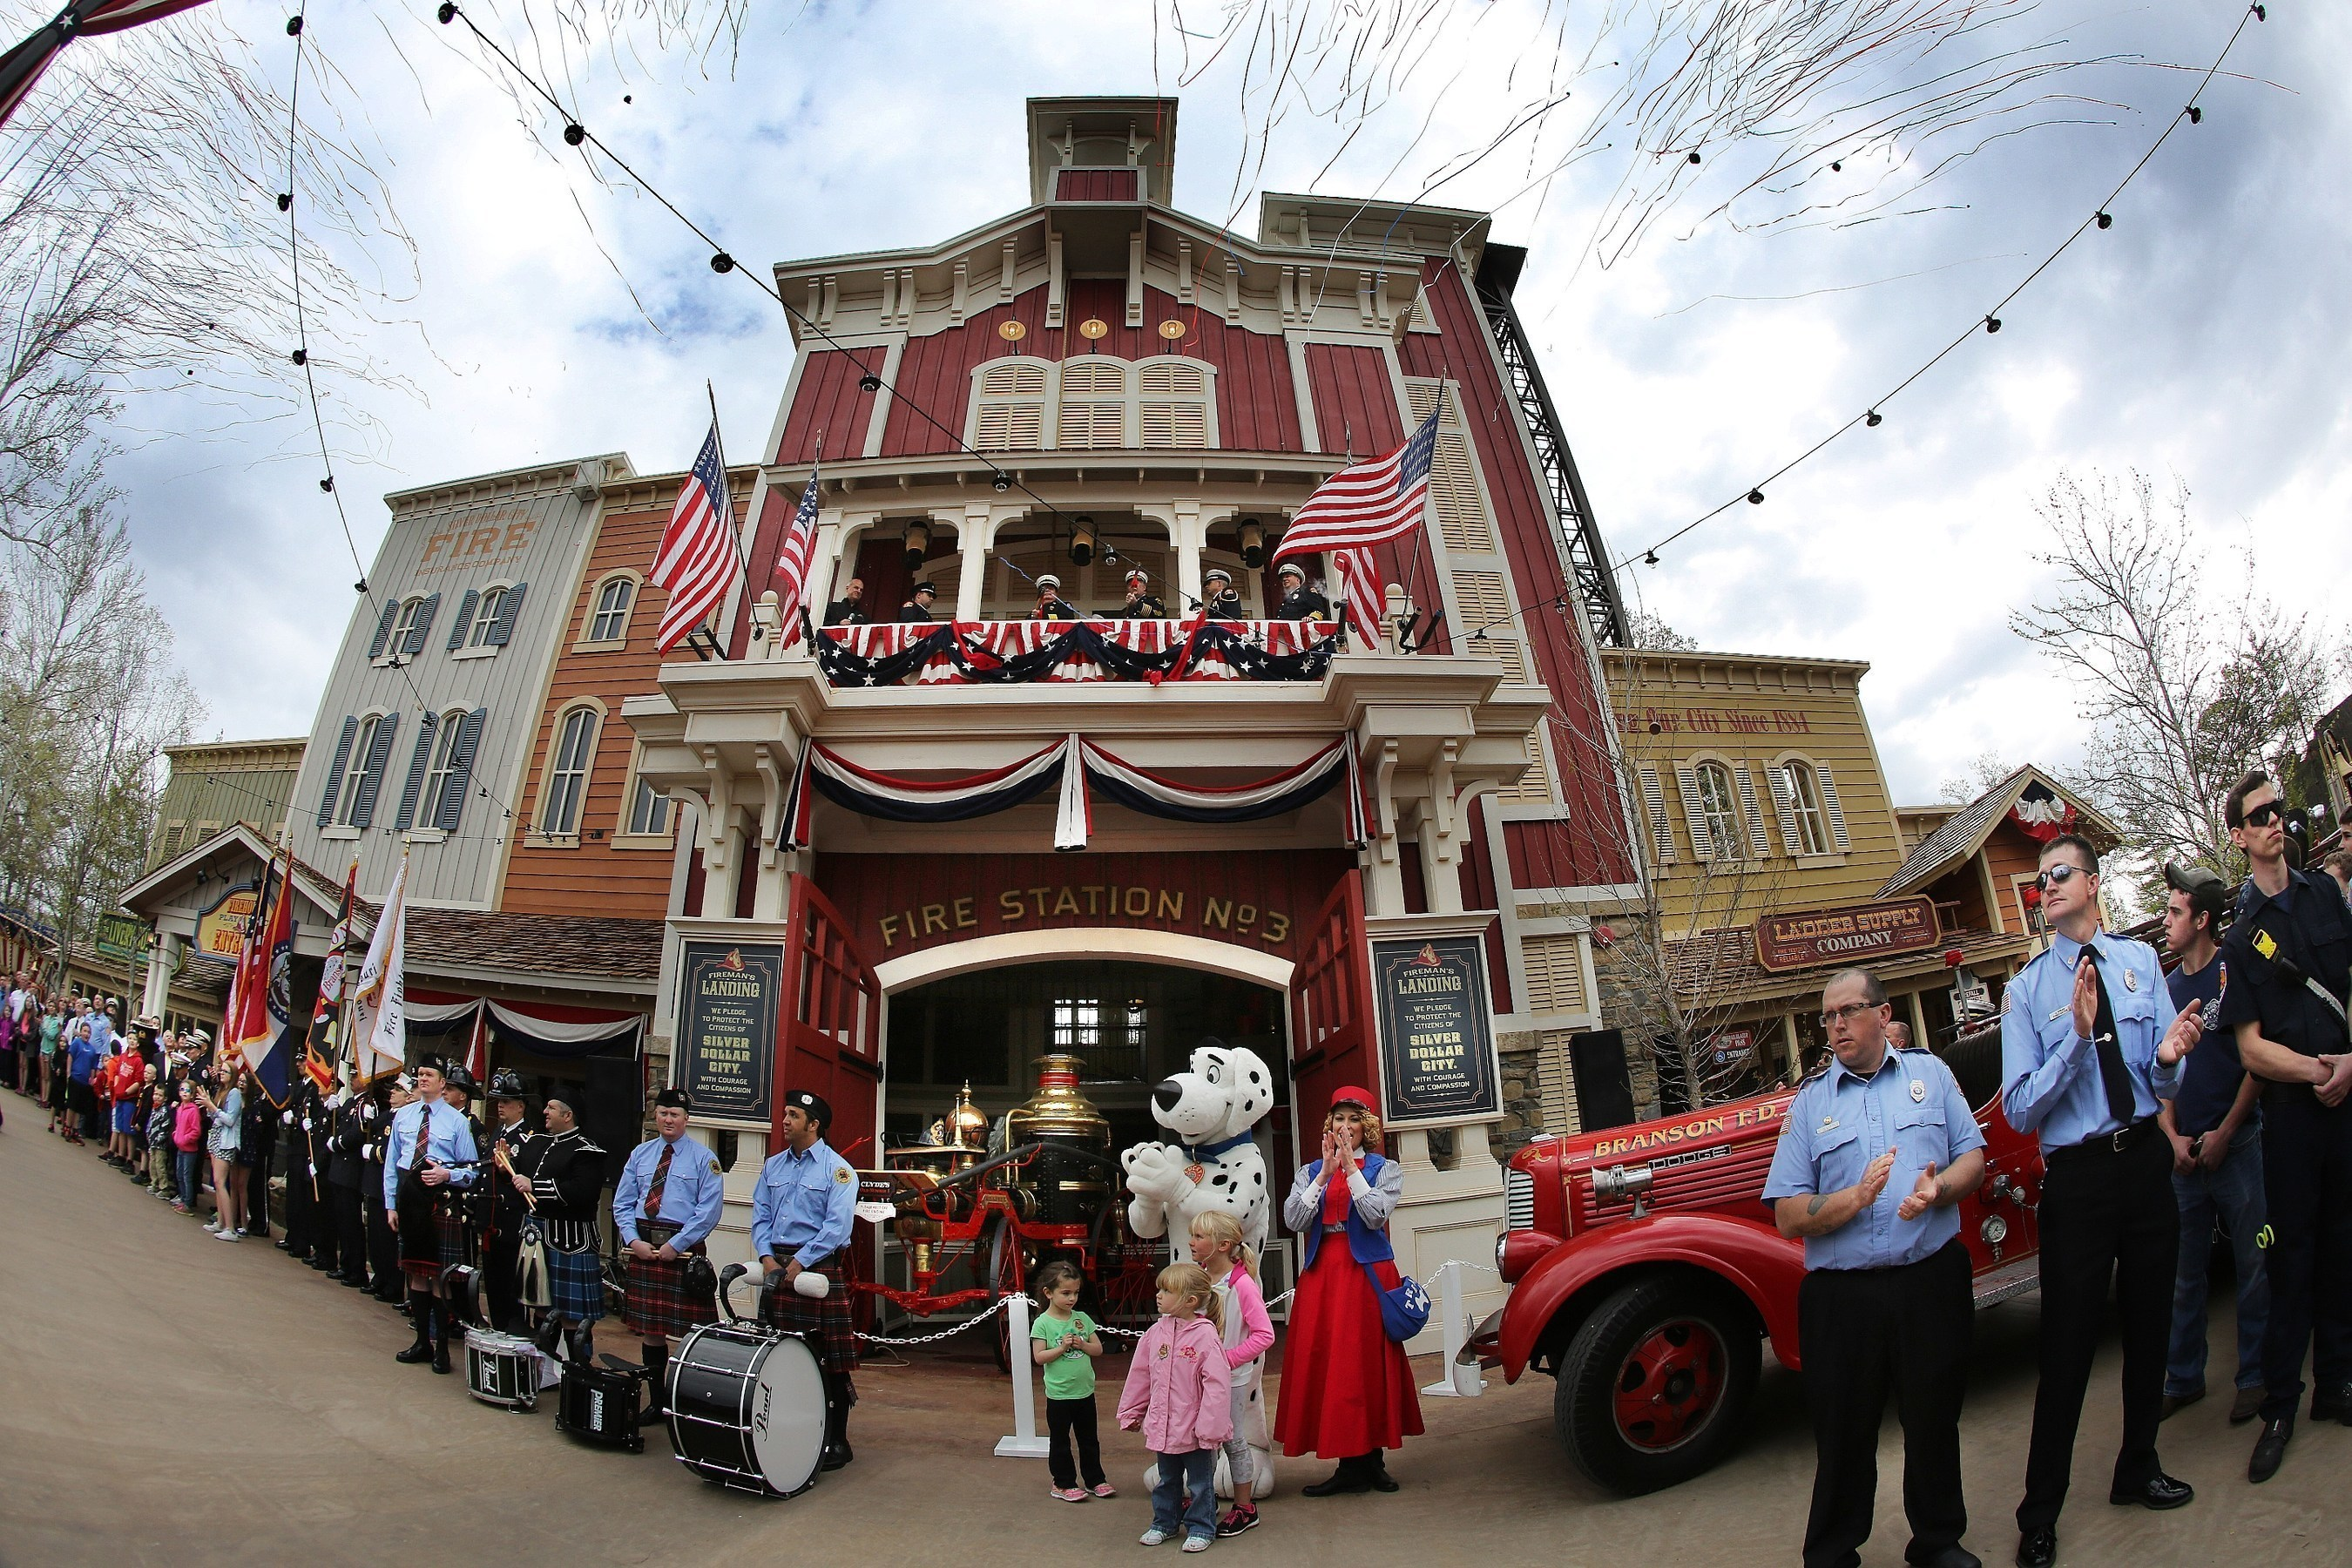 Hundreds of firefighters from around the country gather for the grand opening of Fireman's Landing, a new $8 million area at Silver Dollar City in Branson, Missouri.